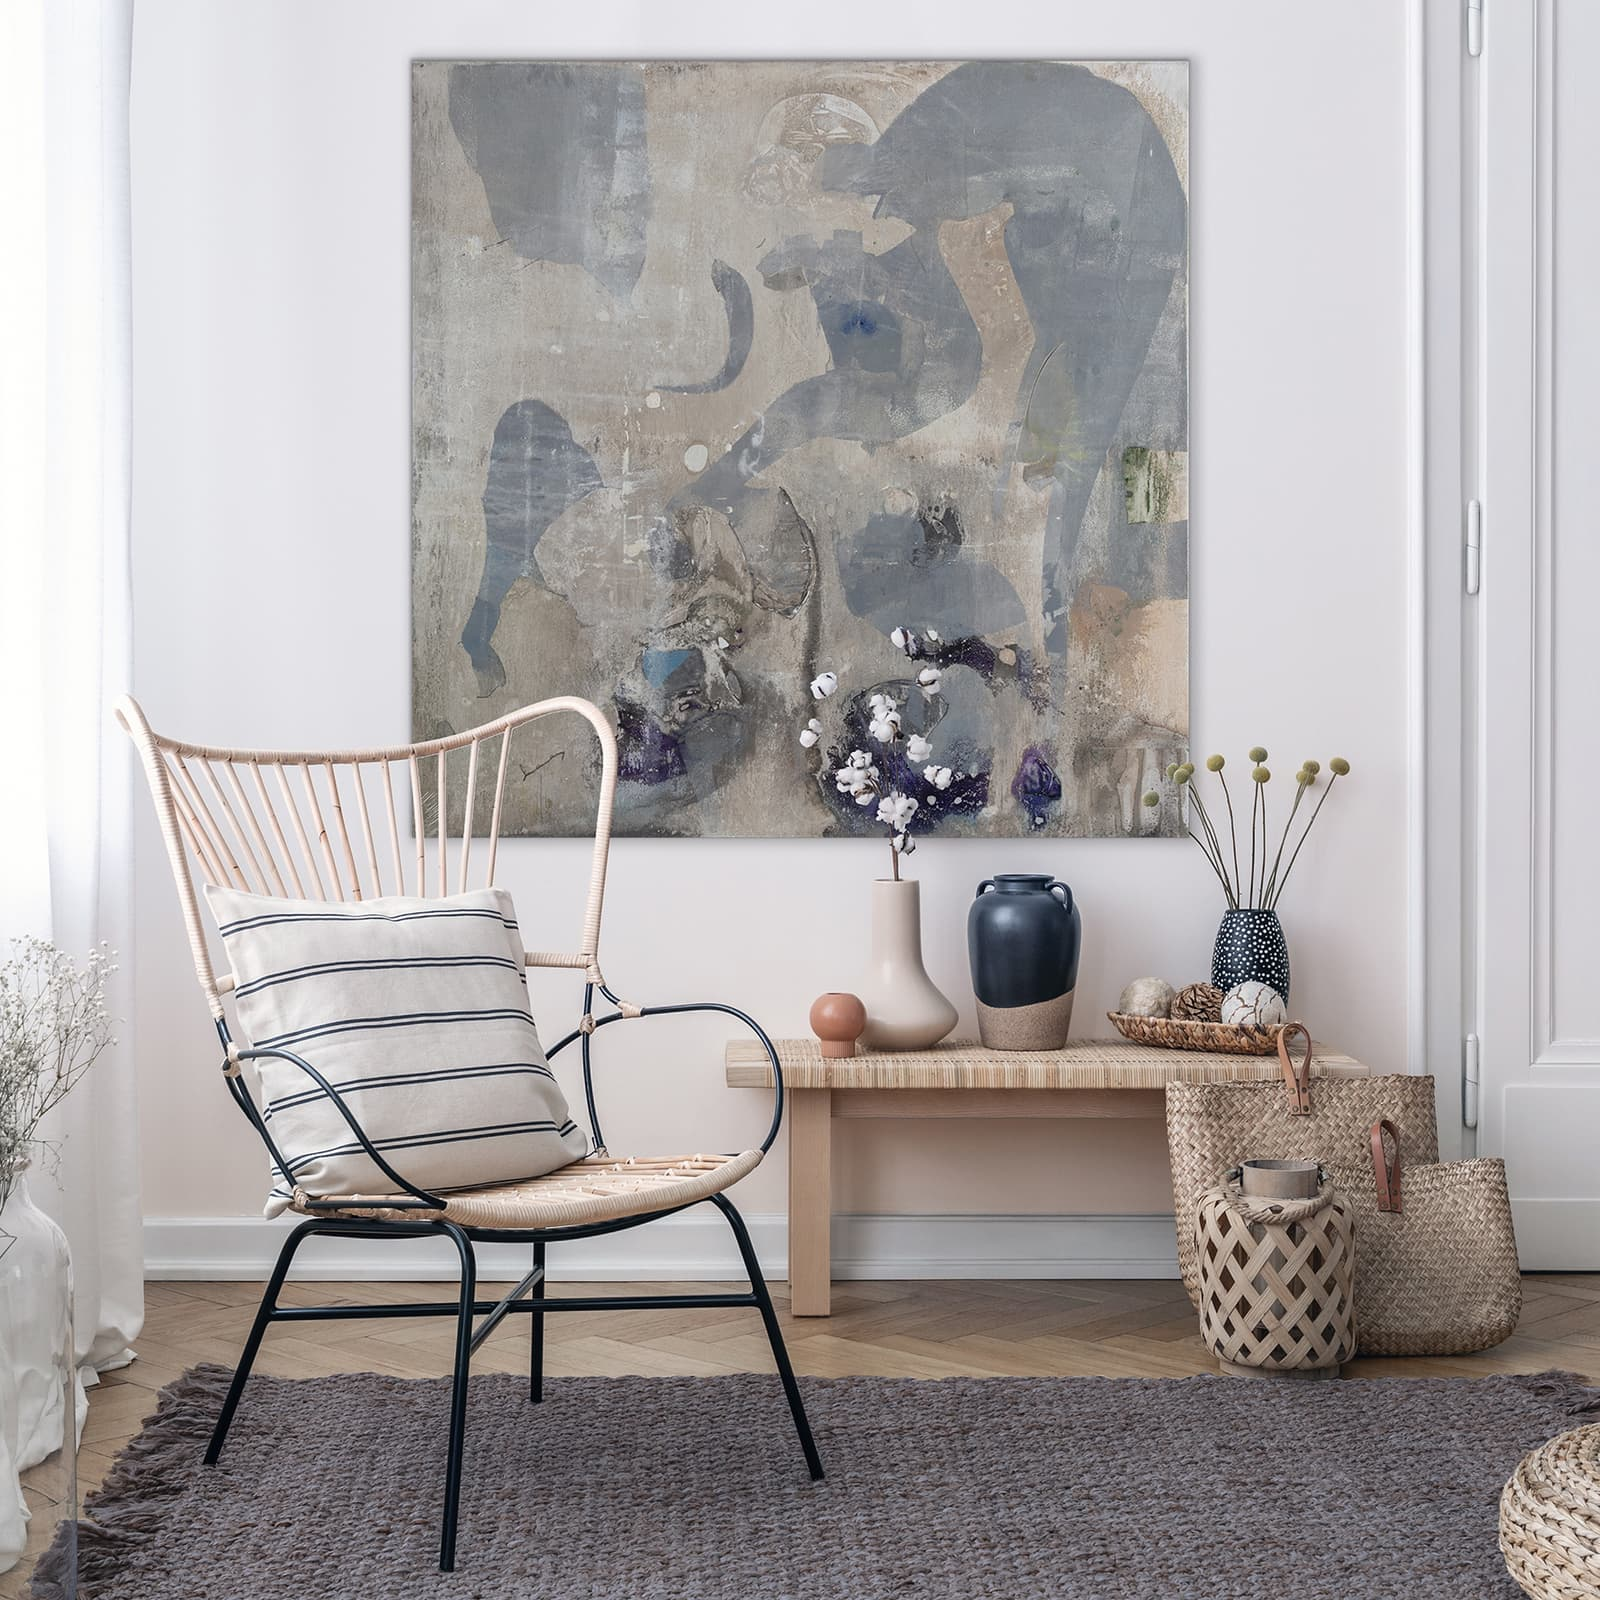 Flowers On Wooden Stool Next To Armchair In White Loft Interior